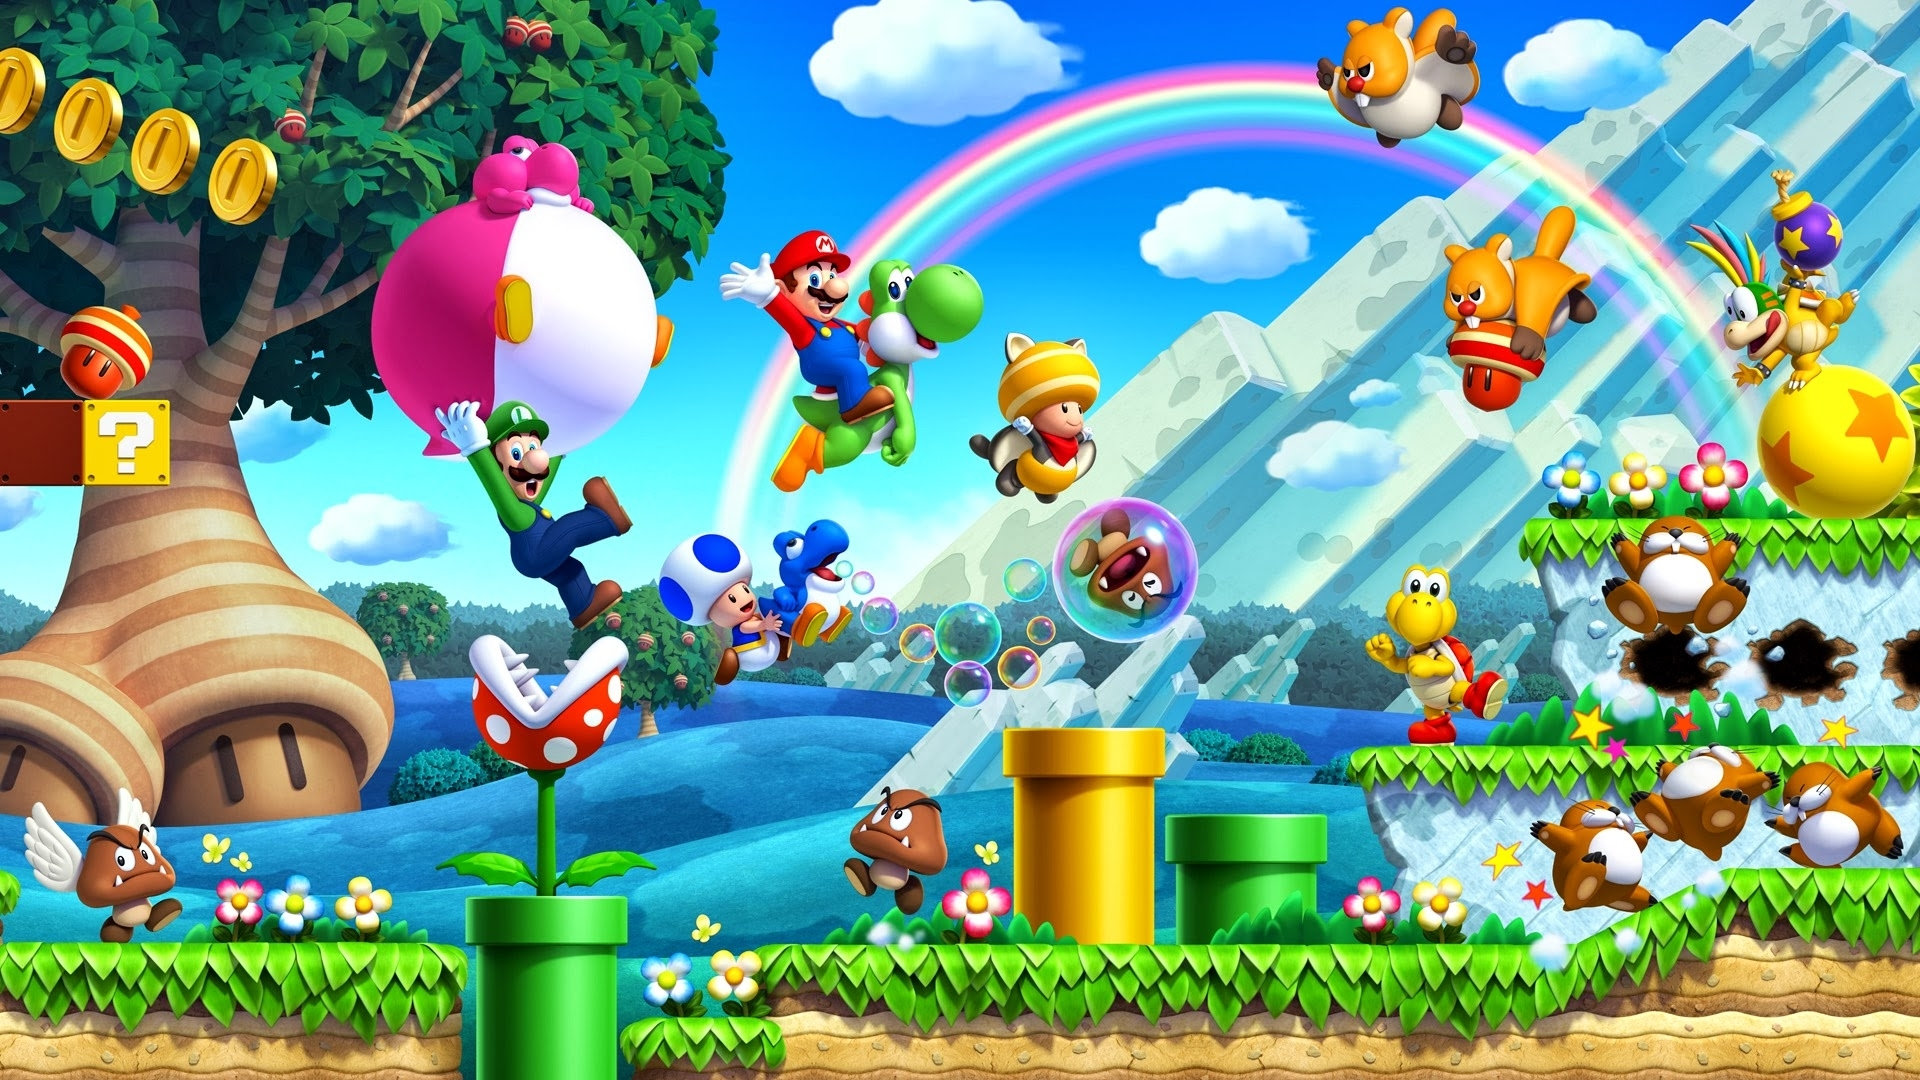 new super mario bros. u wallpaper full hd fond d'écran and arrière